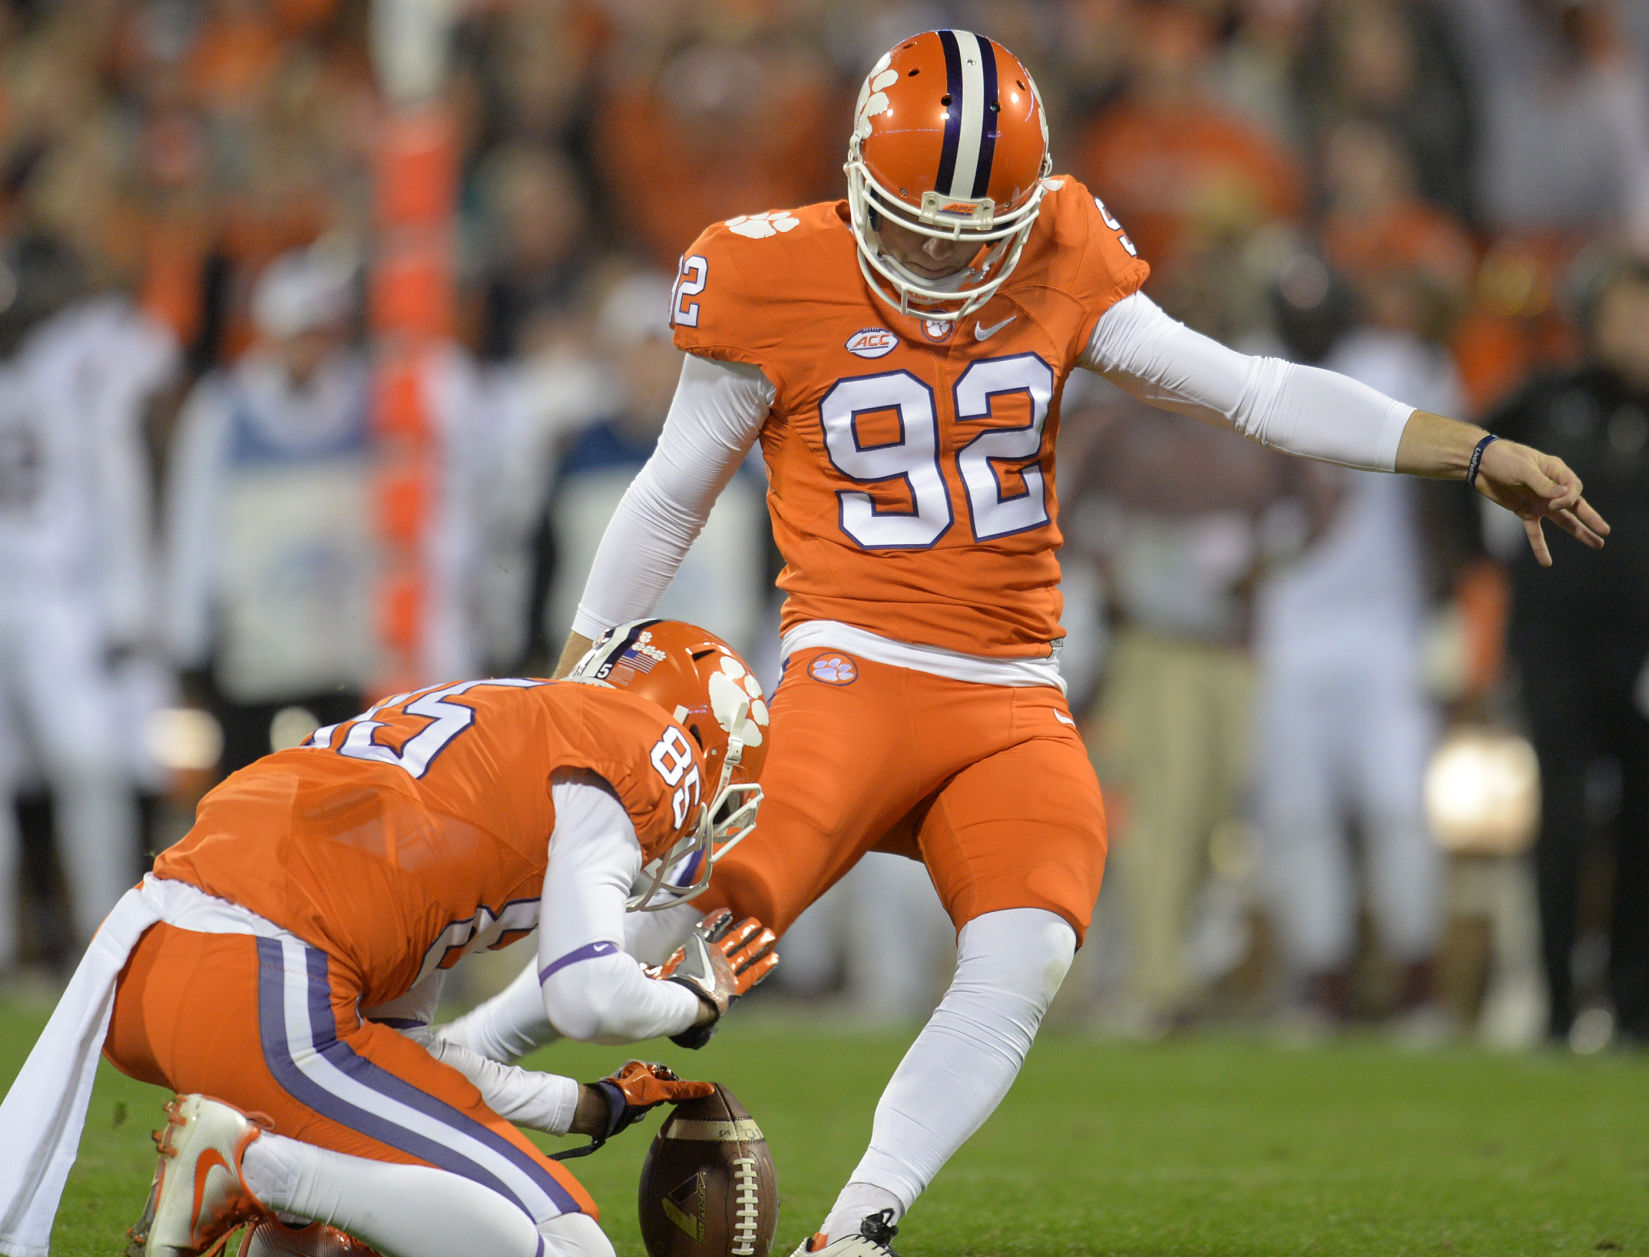 Clemson PK Huegel Lost For Season To Knee Injury